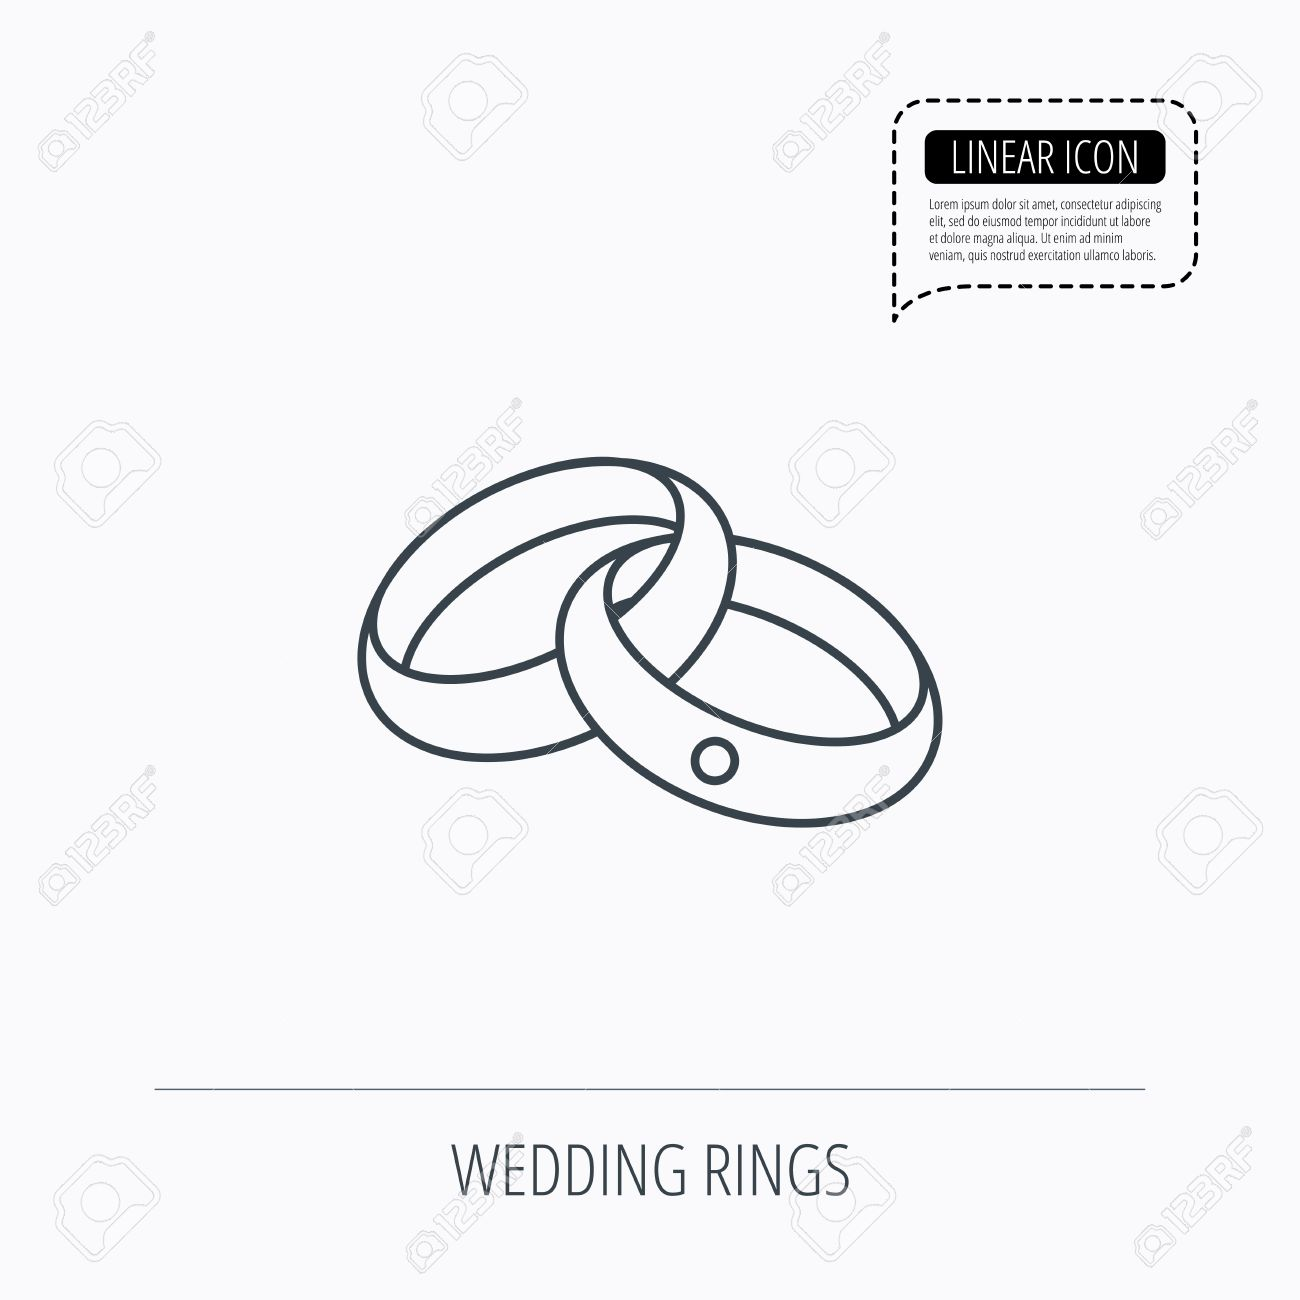 Vector Wedding Rings Icon Bride And Groom Jewelery Sign Linear Outline Speech Bubble Of Dotted Line: Icon Wedding Ring Bride At Reisefeber.org